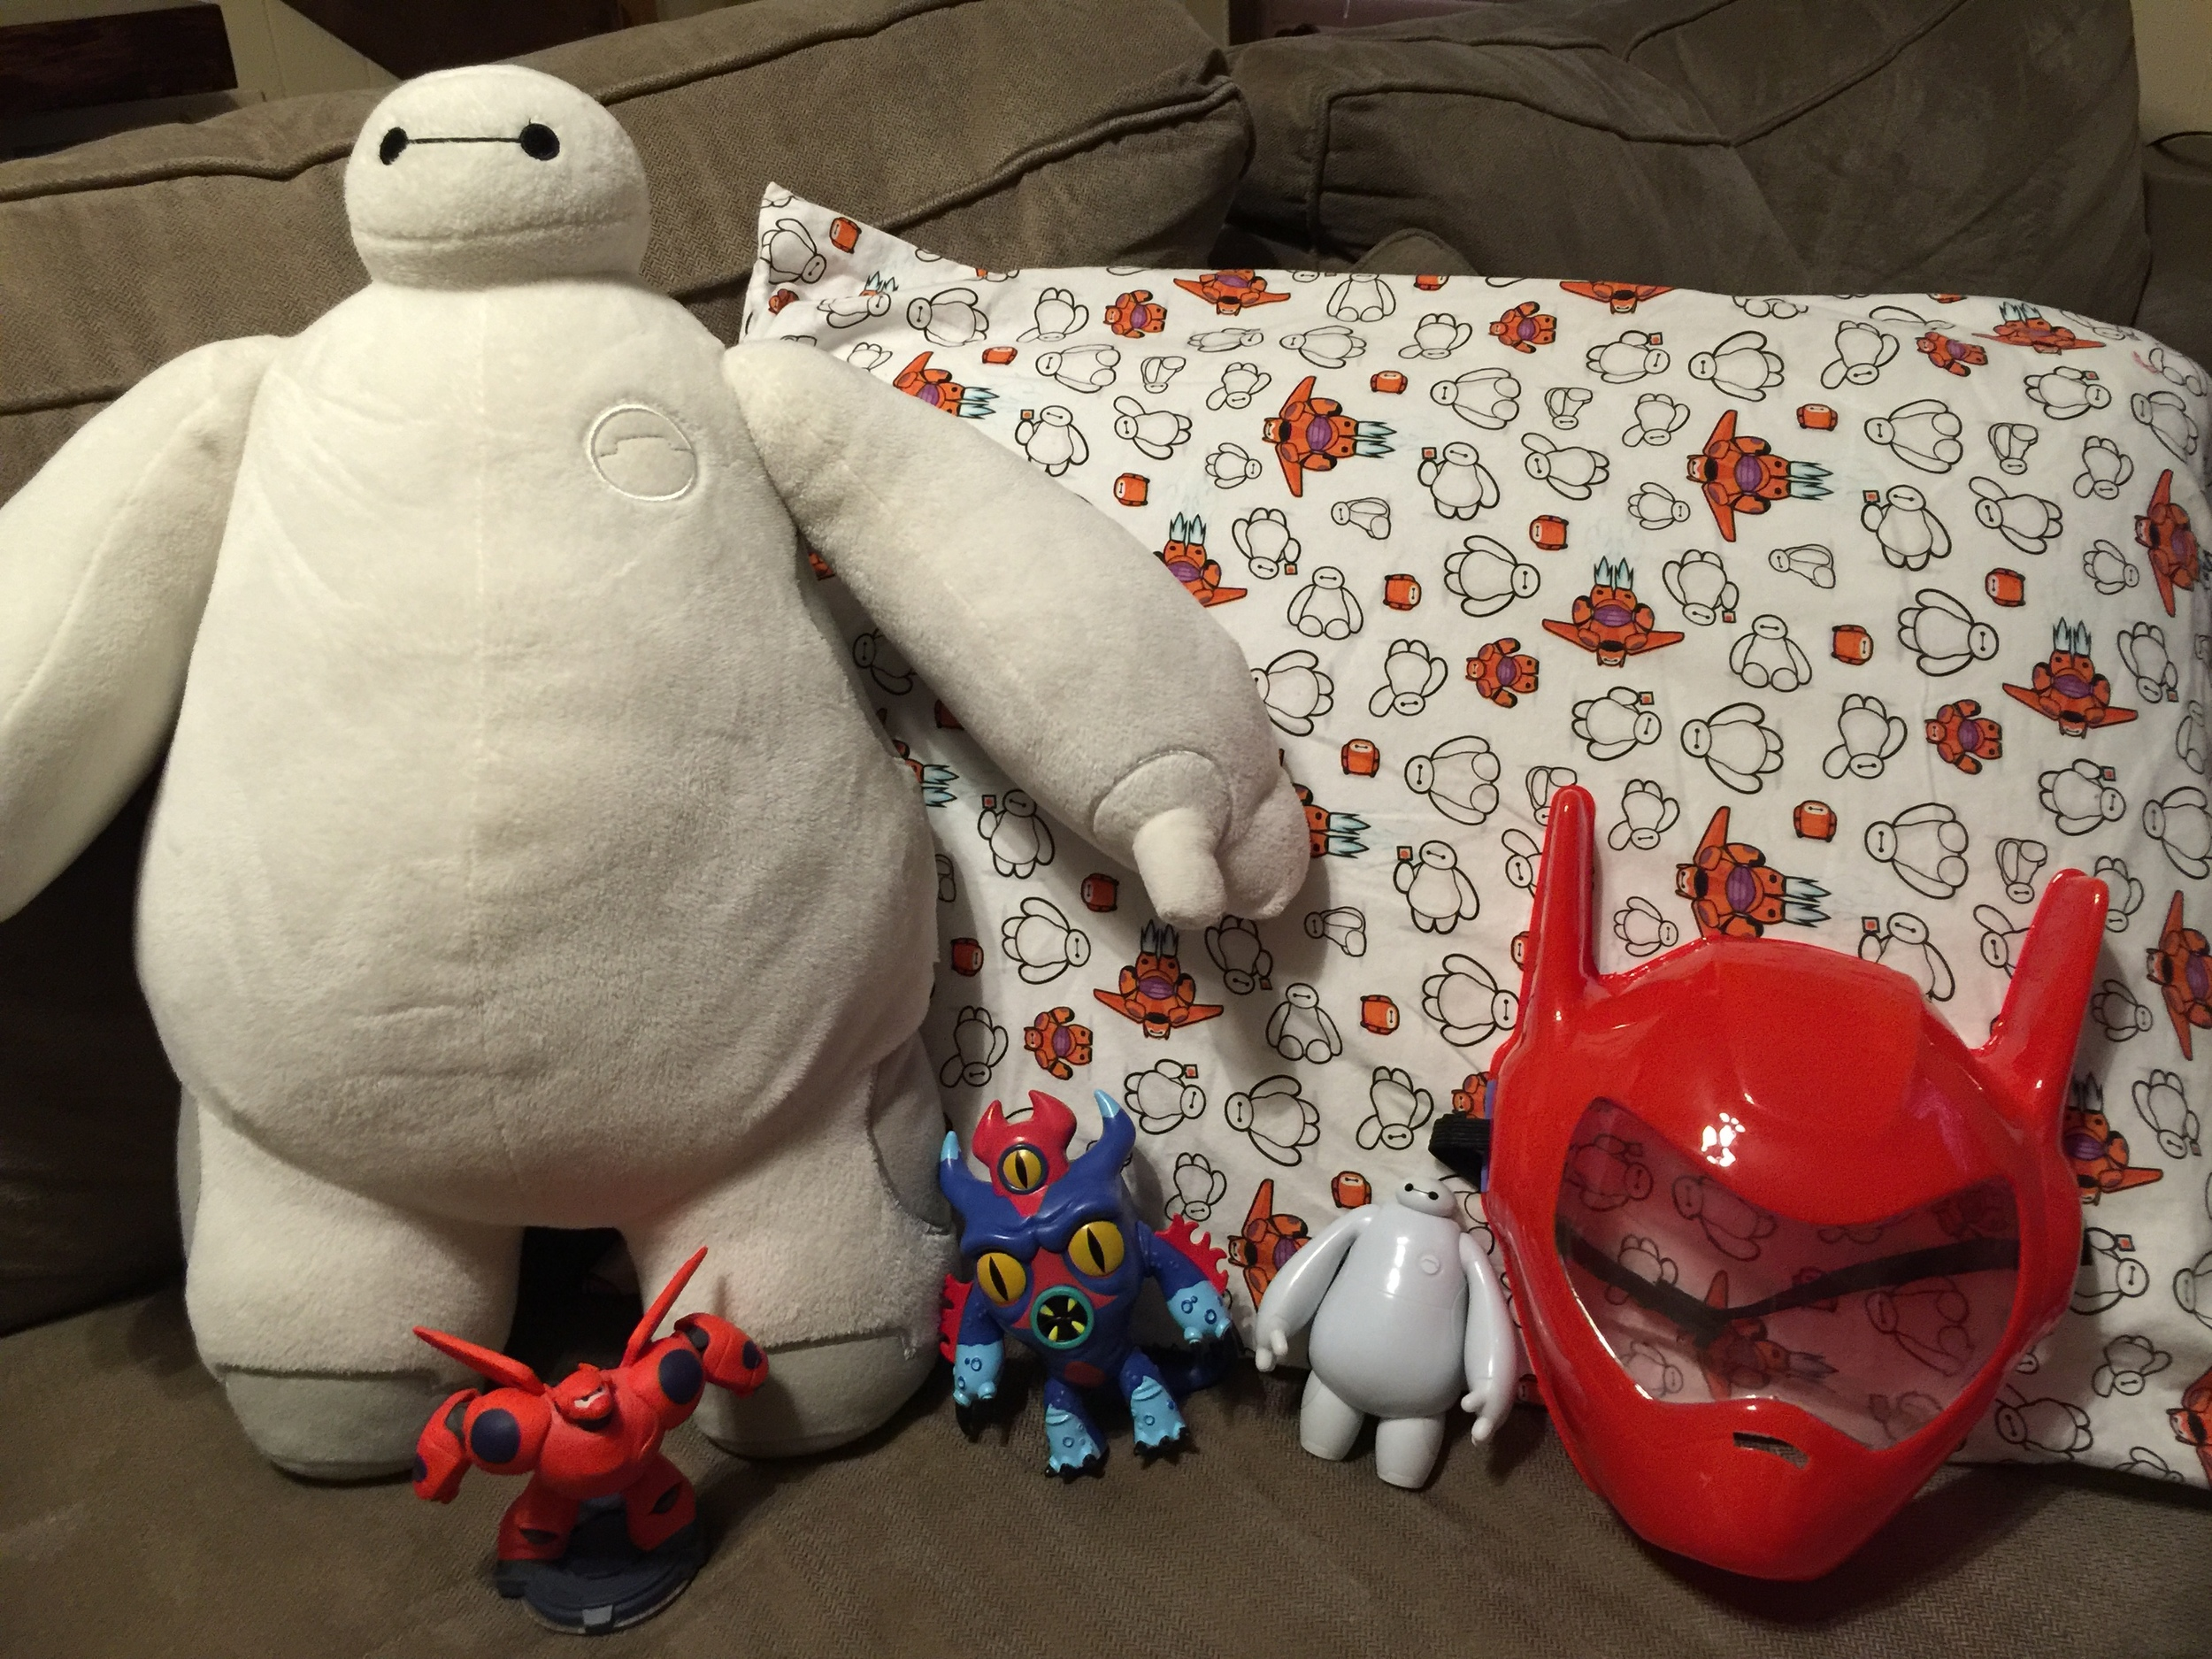 A partial collection of Penelope's Big Hero 6 stuff